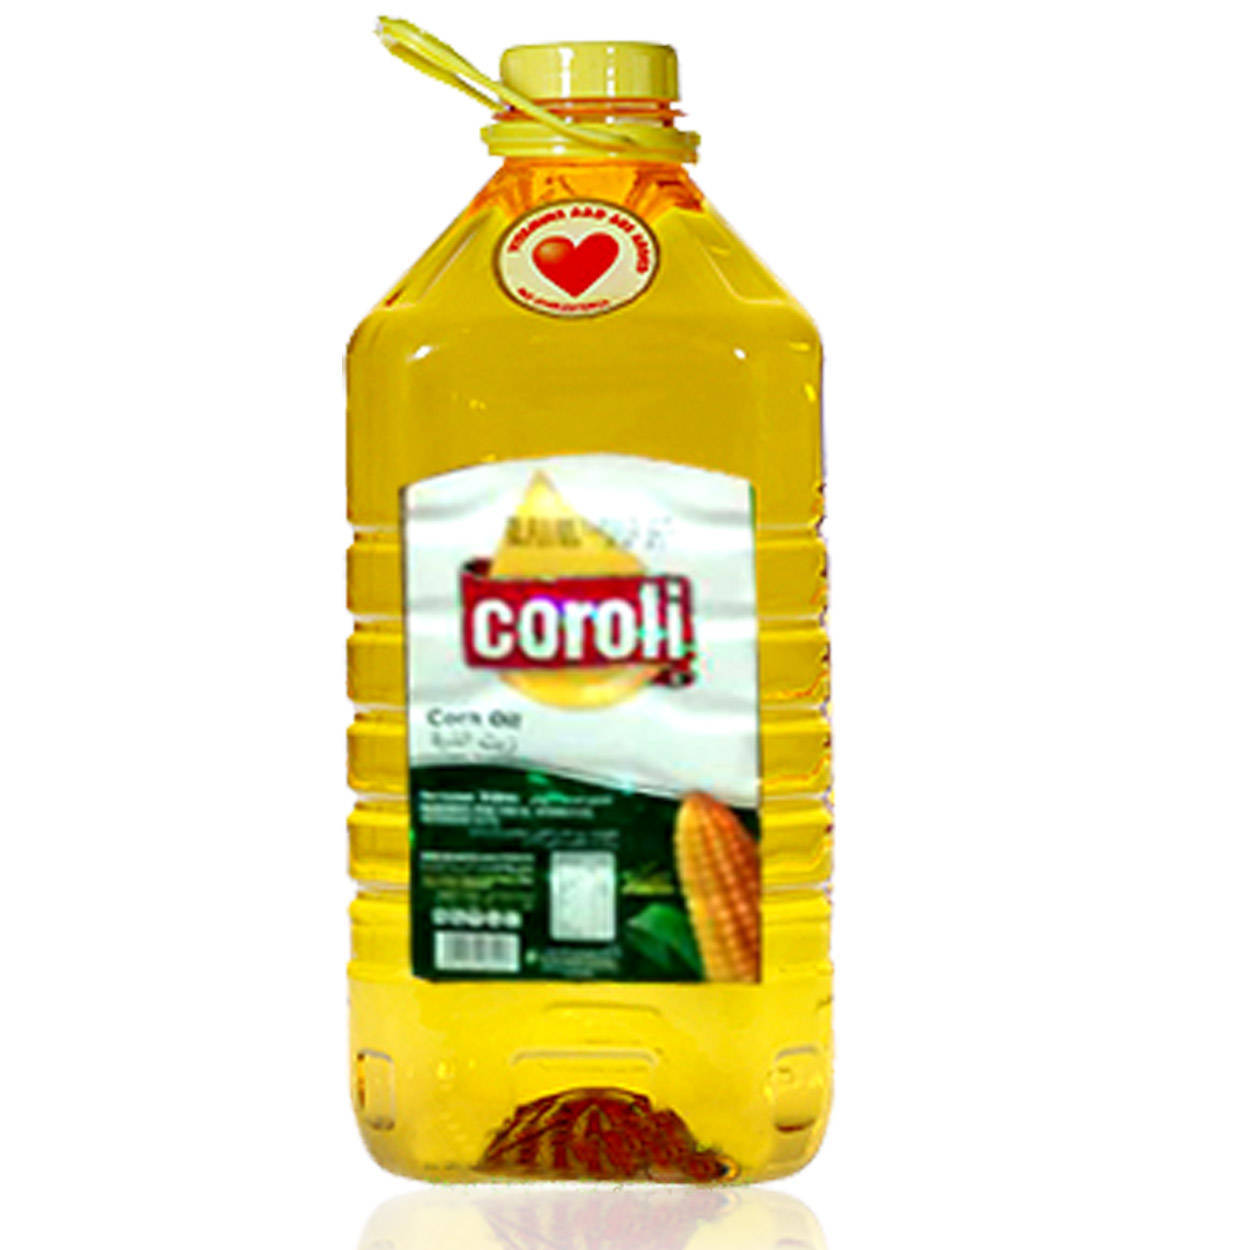 Coroli Corn Cooking Oil Bottle 5ltr